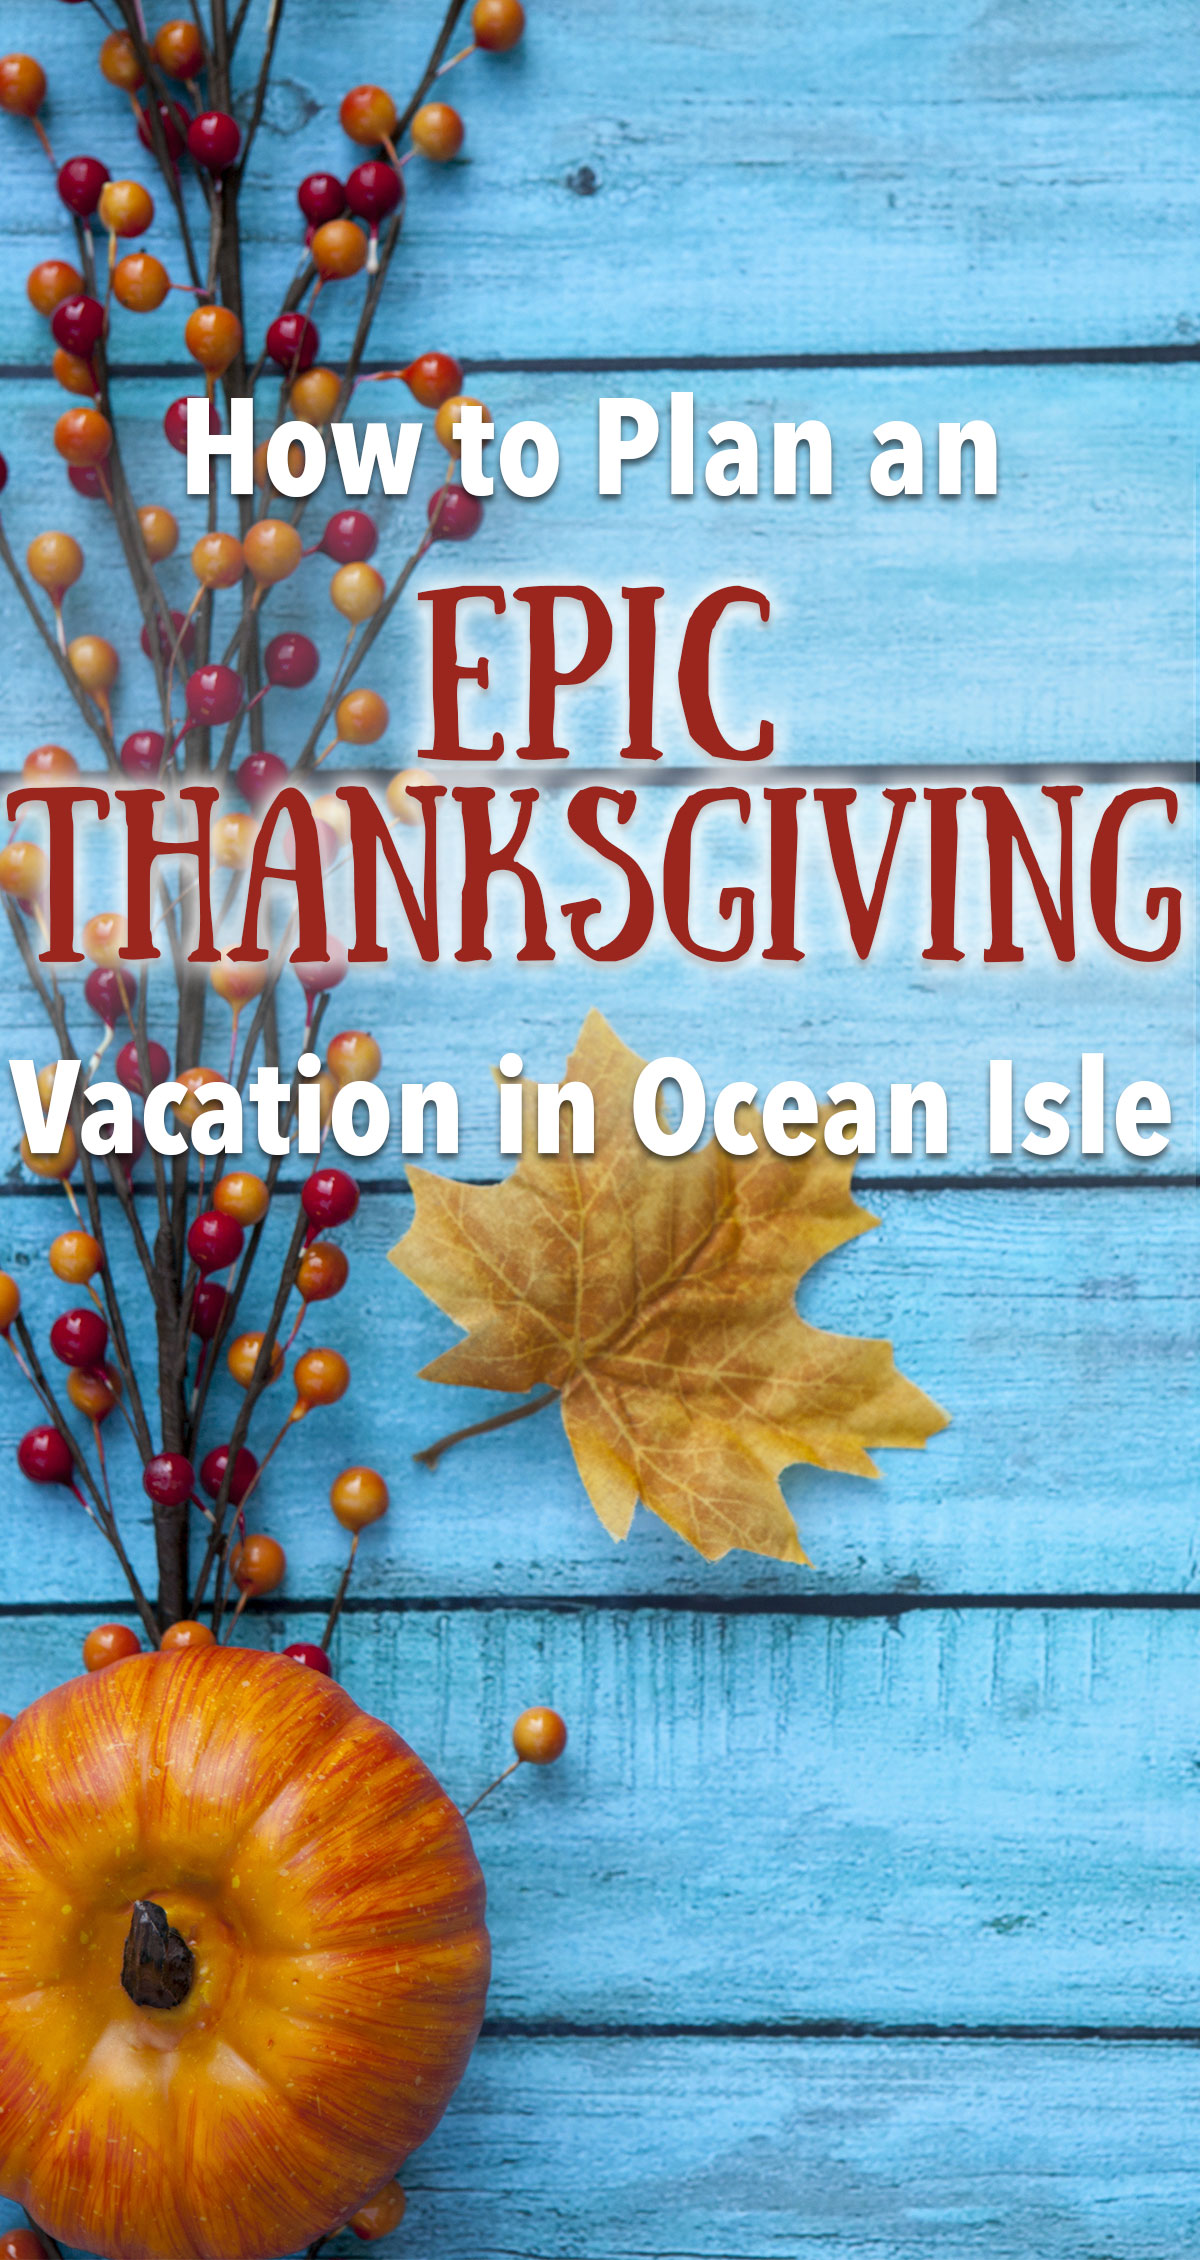 How to Plan an Epic Thanksgiving Vacation in Ocean Isle Pin